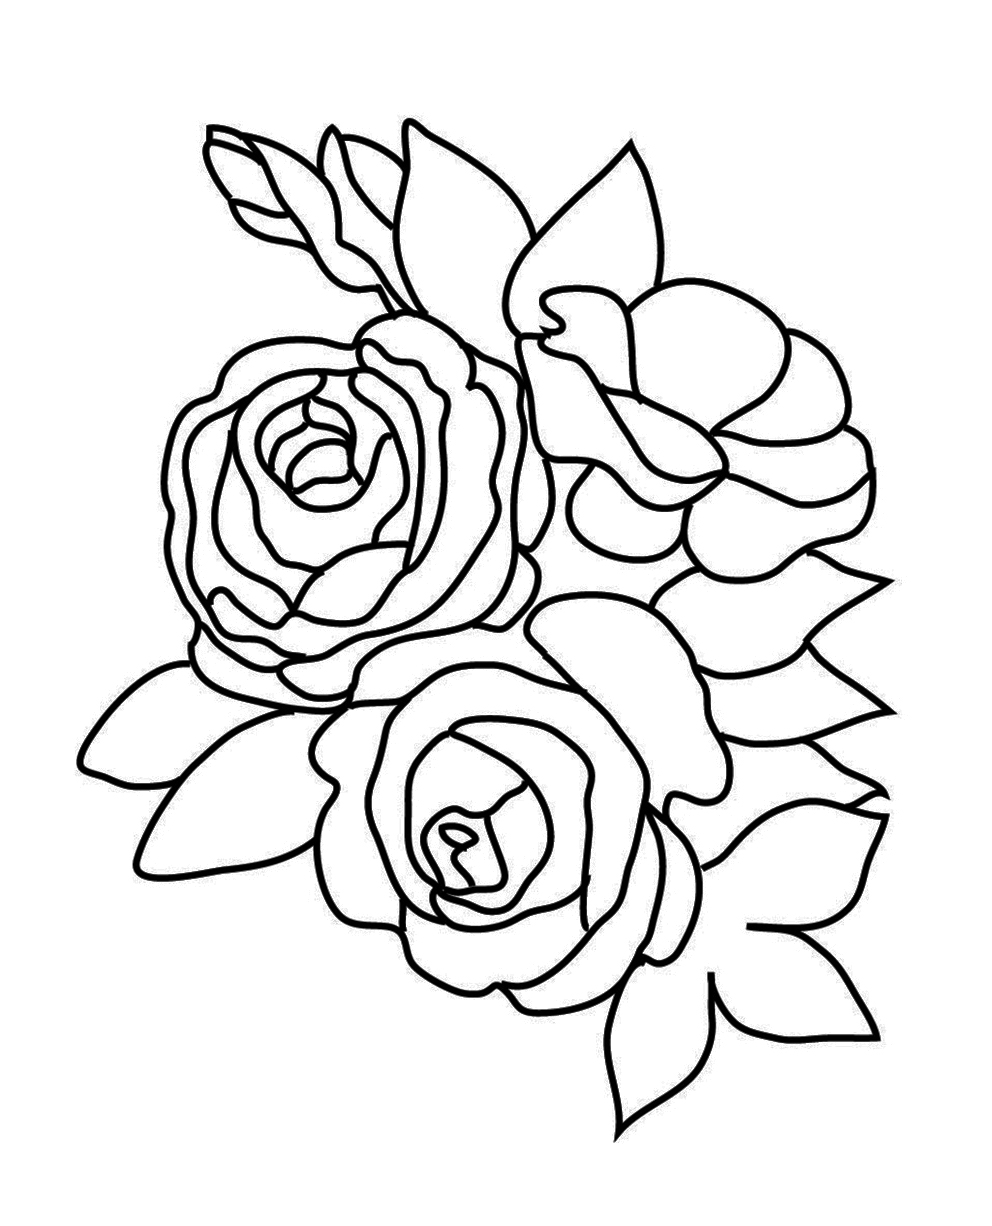 rose flower coloring pages flower coloring pages flower coloring rose pages